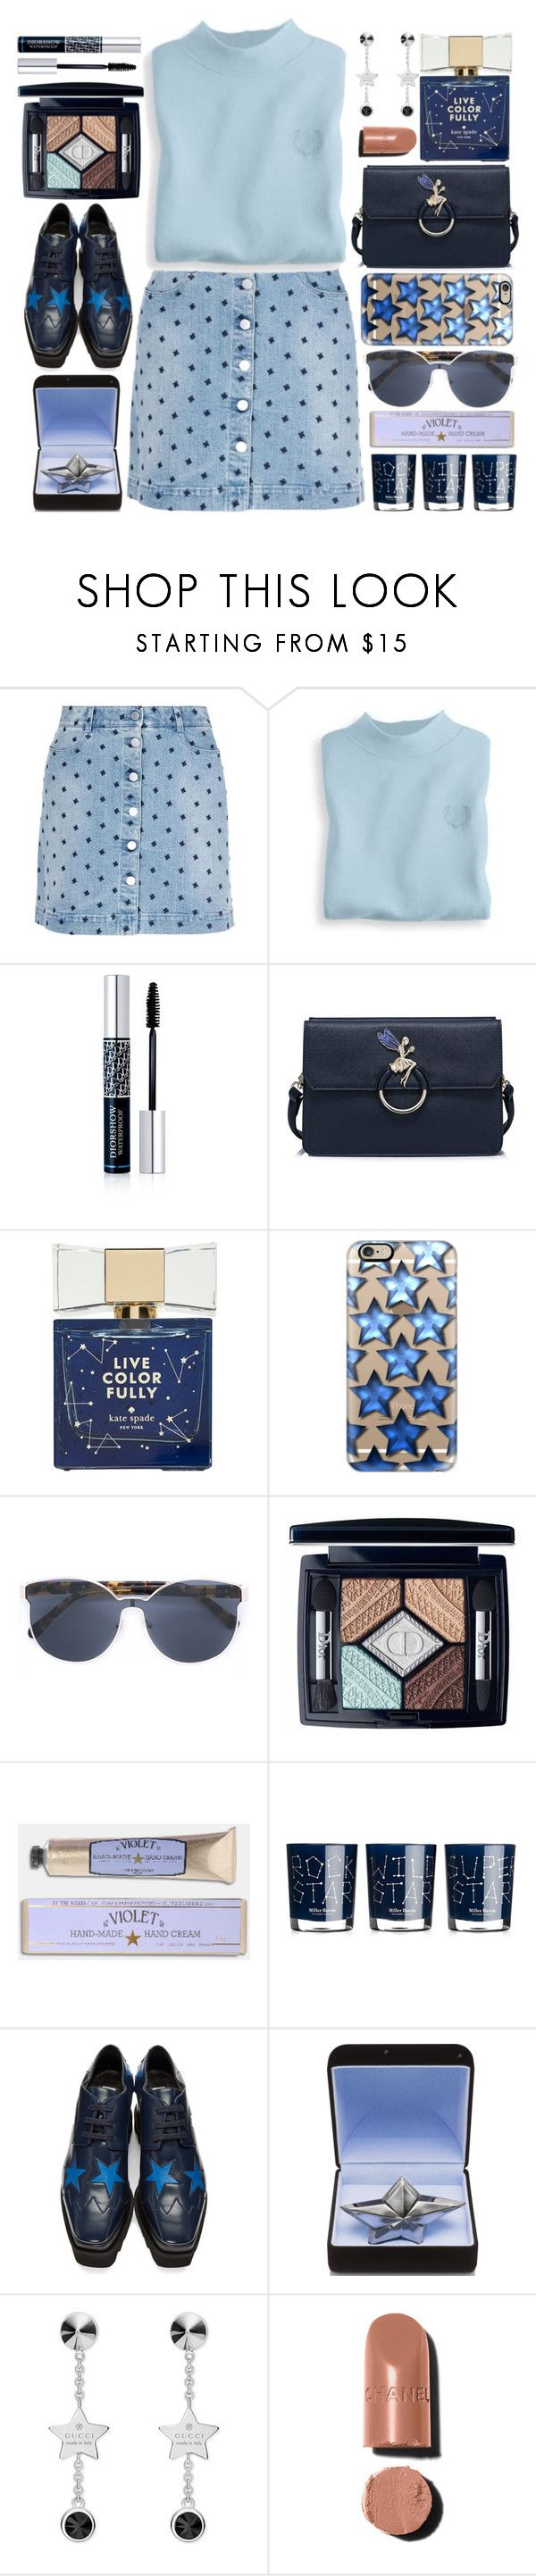 """""""Star"""" by grozdana-v ❤ liked on Polyvore featuring STELLA McCARTNEY, Blair, Christian Dior, Kate Spade, Casetify, Karen Walker, Soap & Paper Factory, Miller Harris, Thierry Mugler and Gucci"""